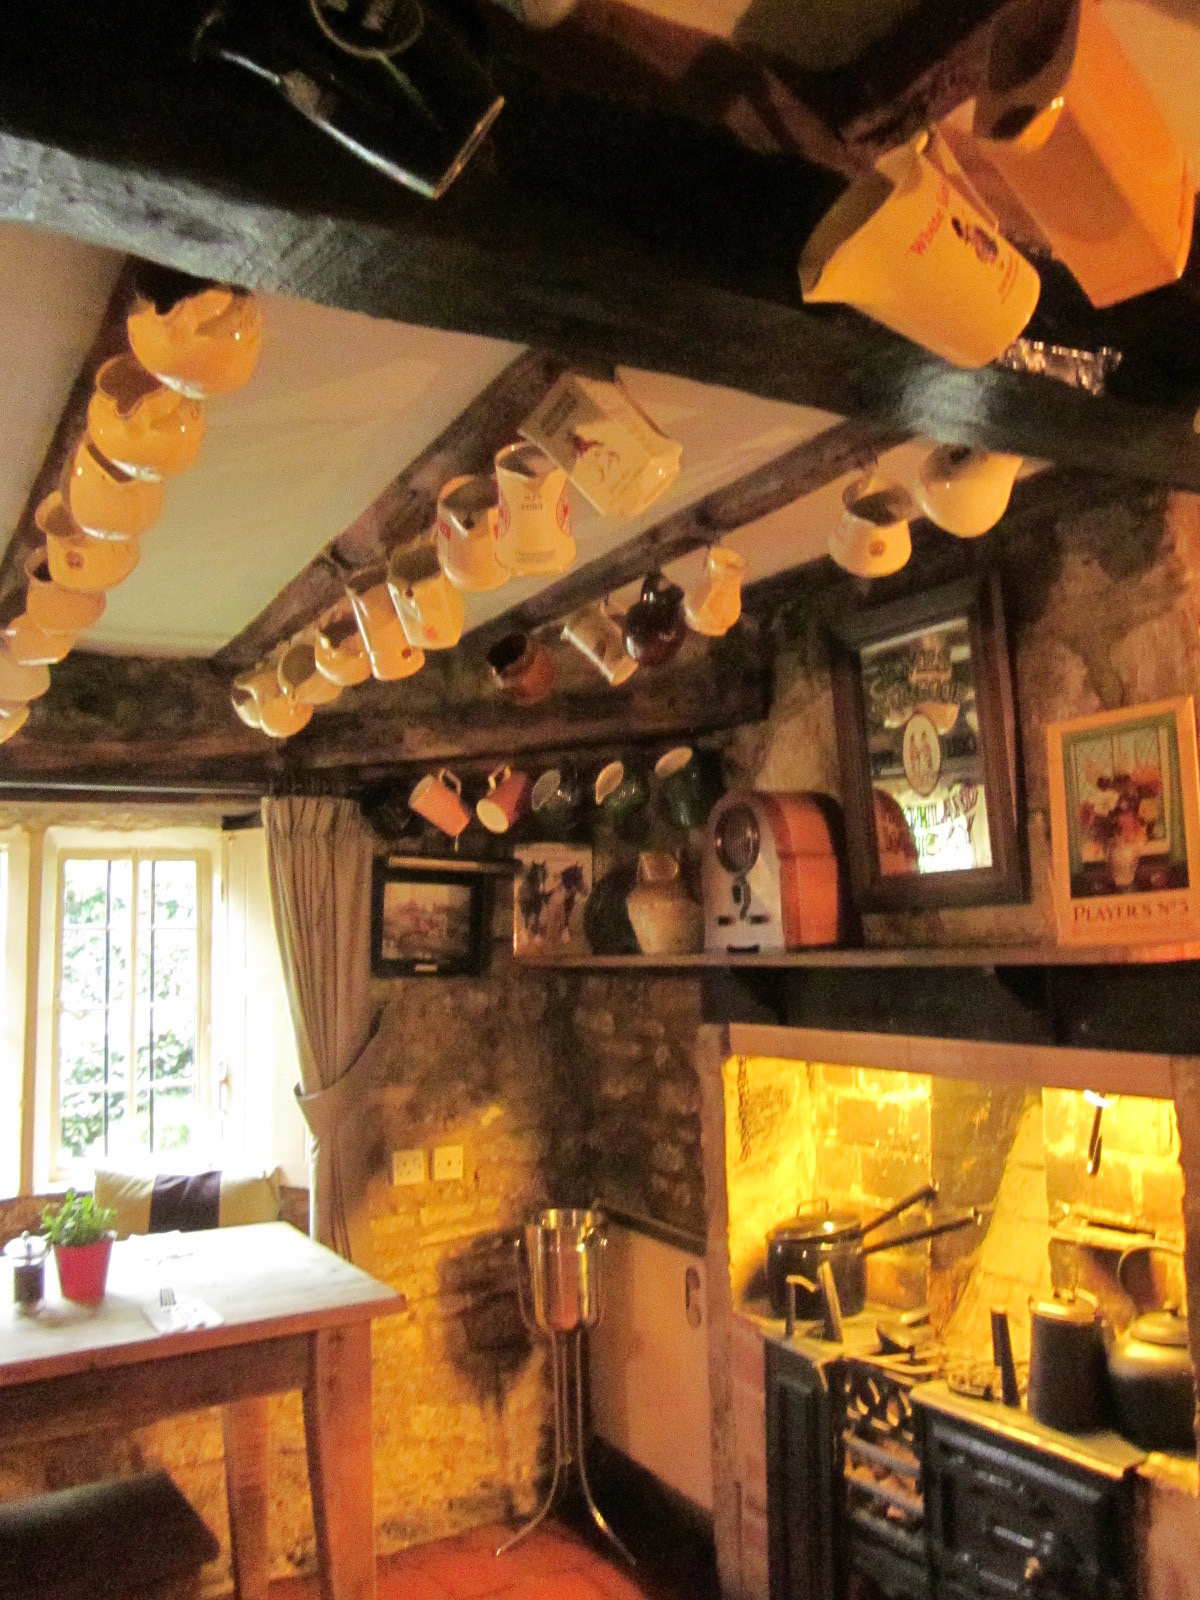 Personal mugs on the ceiling of the Falkland Arms pub. (A matter of hygiene at one time...?)